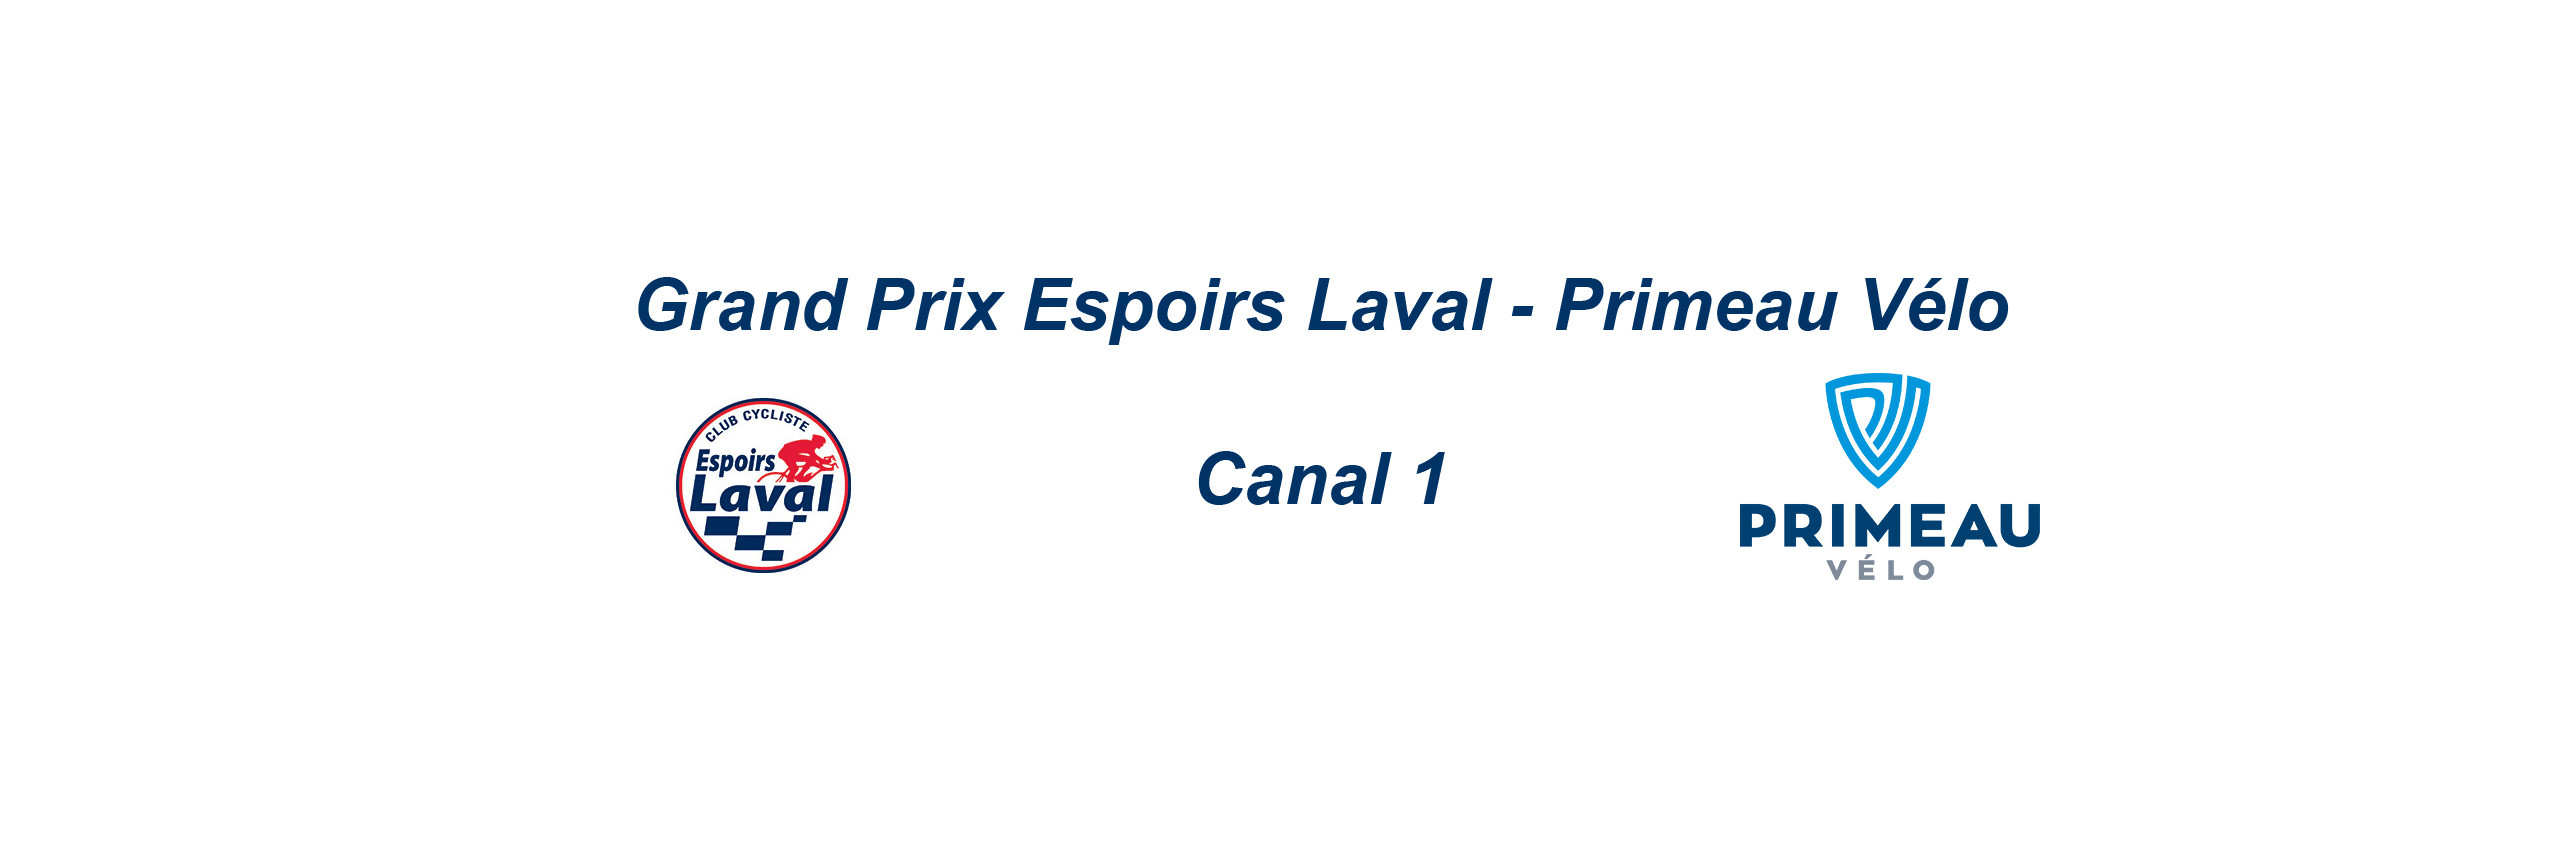 Espoirs Laval Road Cycling